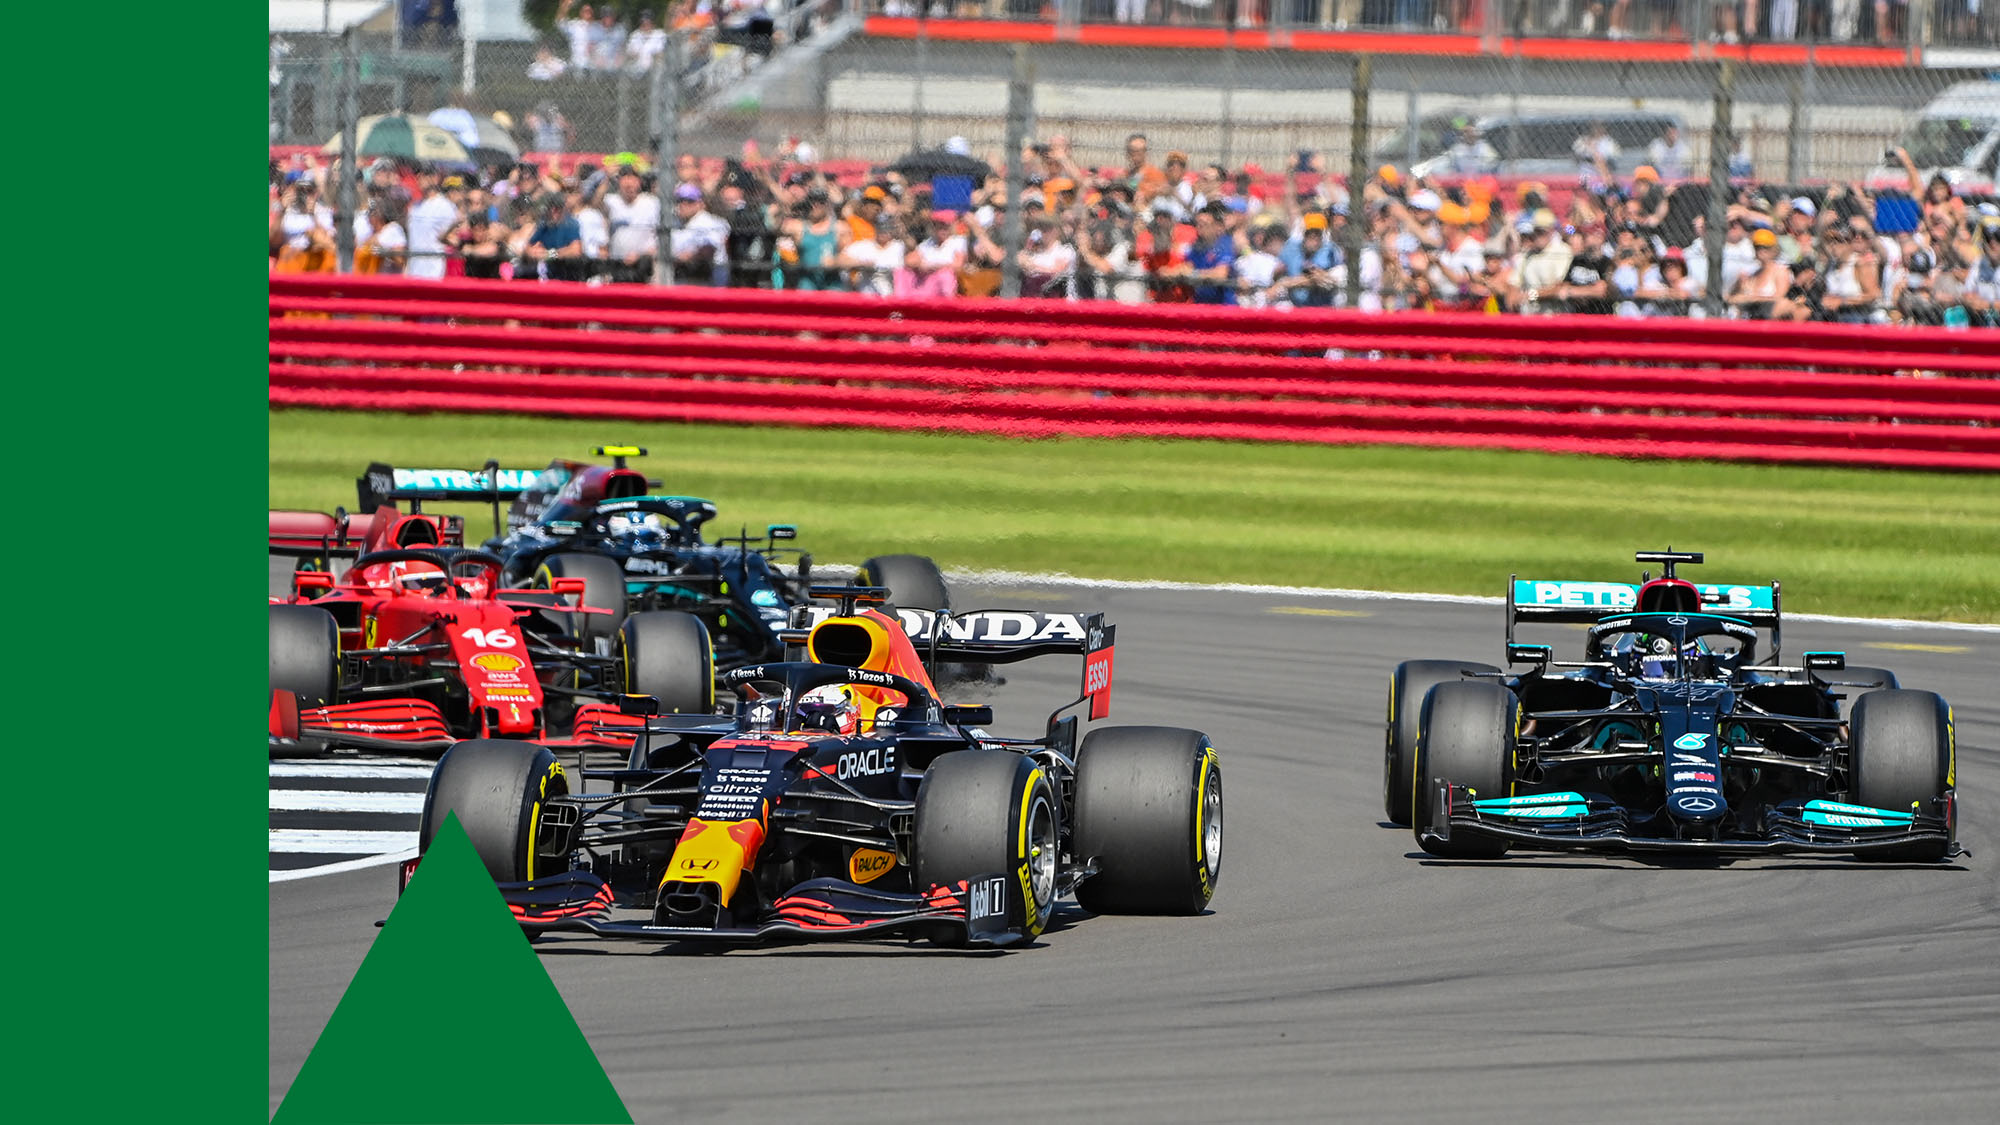 33 VERSTAPPEN Max (nld), Red Bull Racing Honda RB16B, action 44 HAMILTON Lewis (gbr), Mercedes AMG F1 GP W12 E Performance, action 16 LECLERC Charles (mco), Scuderia Ferrari SF21, action during the Formula 1 Pirelli British Grand Prix 2021, 10th round of the 2021 FIA Formula One World Championship from July 16 to 18, 2021 on the Silverstone Circuit, in Silverstone, United Kingdom - Photo DPPI